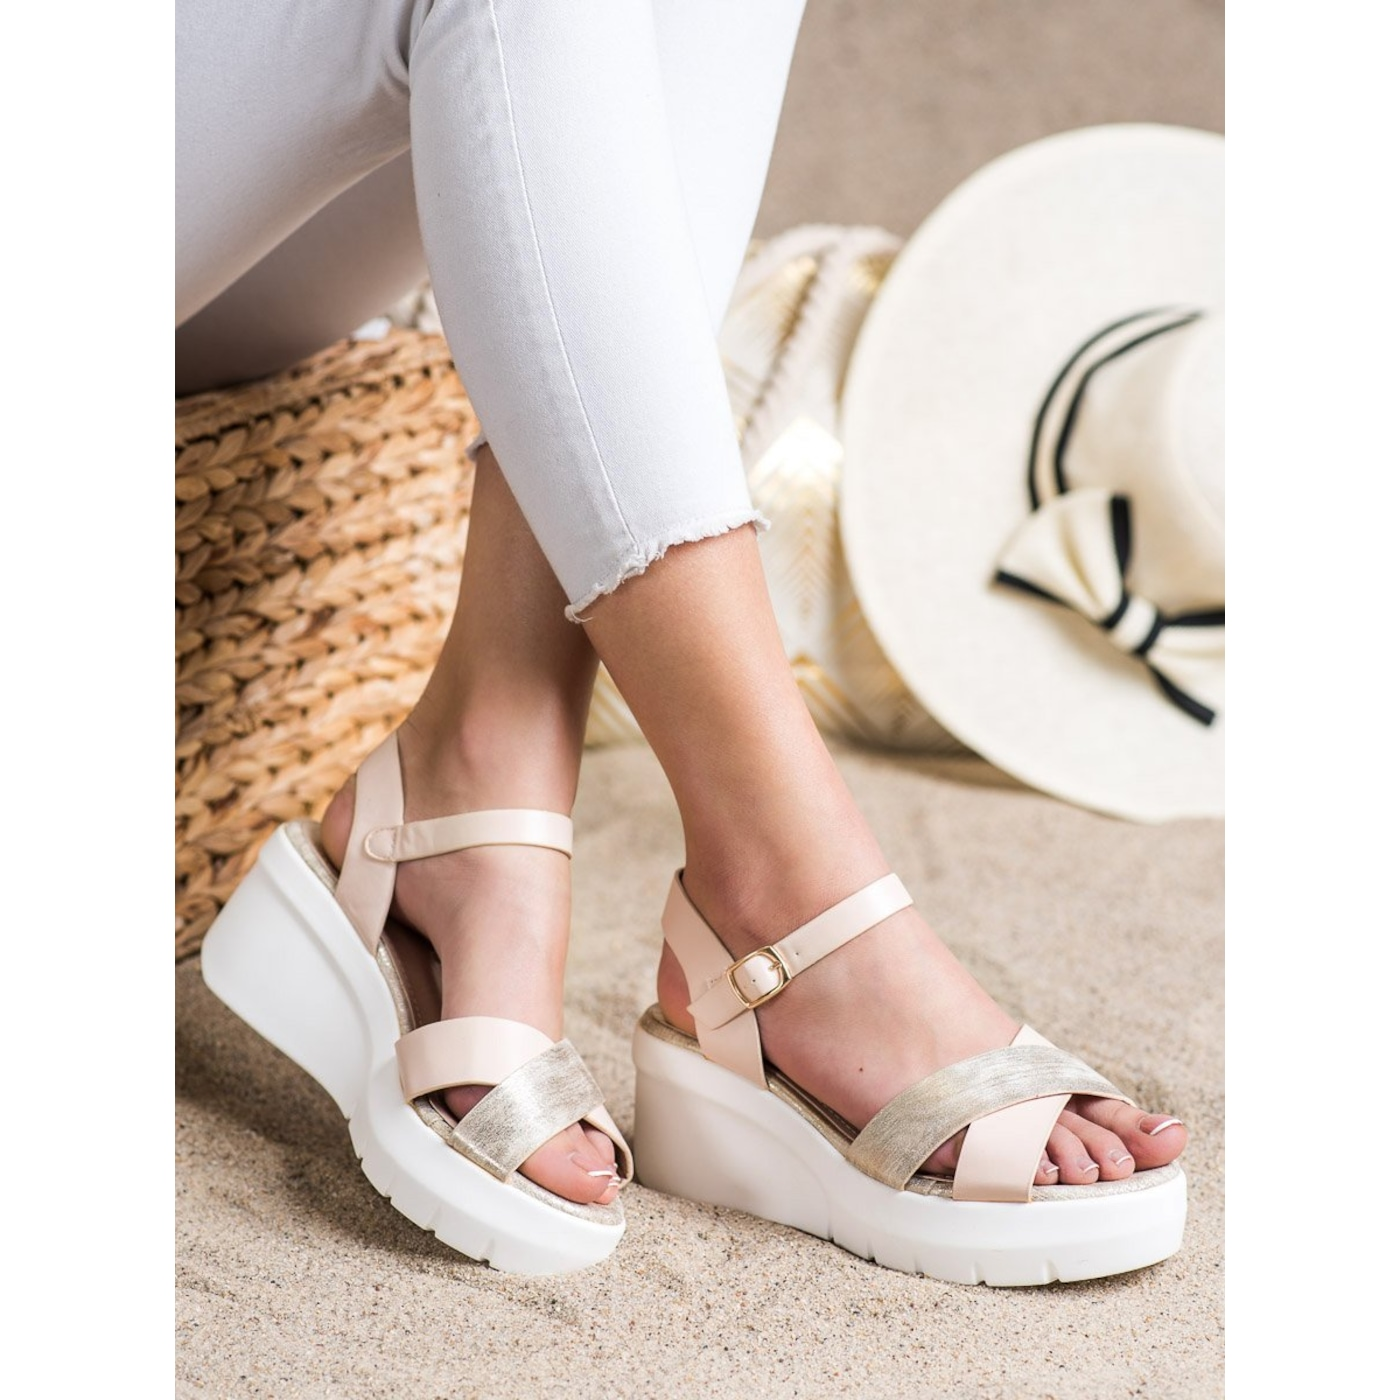 SMALL SWAN SANDALS ON THE WED